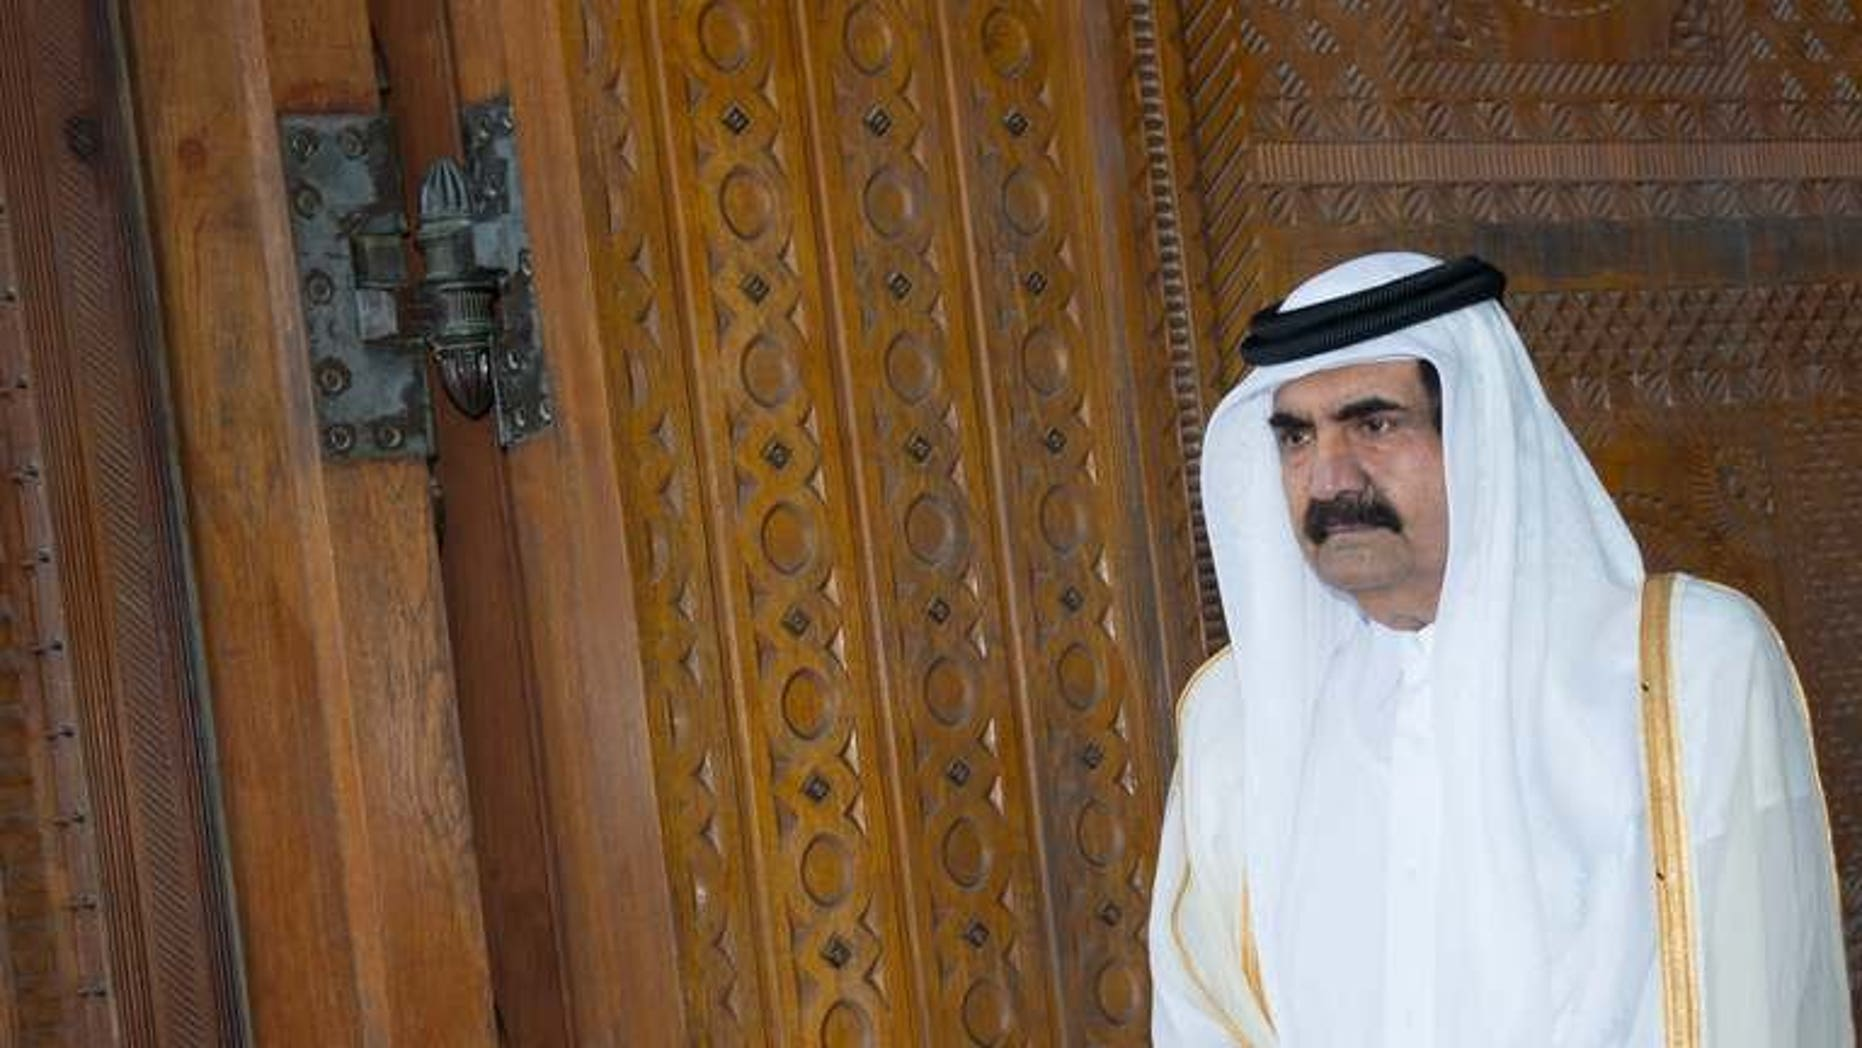 Qatari Emir Sheikh Hamad bin Khalifa al-Thani is pictured in Doha on June 23, 2013. The emir is expected to meet members of the royal family Monday, with Qatari officials and diplomats saying a transfer of power to his son, Crown Prince Sheikh Tamim bin Hamad al-Thani, is imminent.